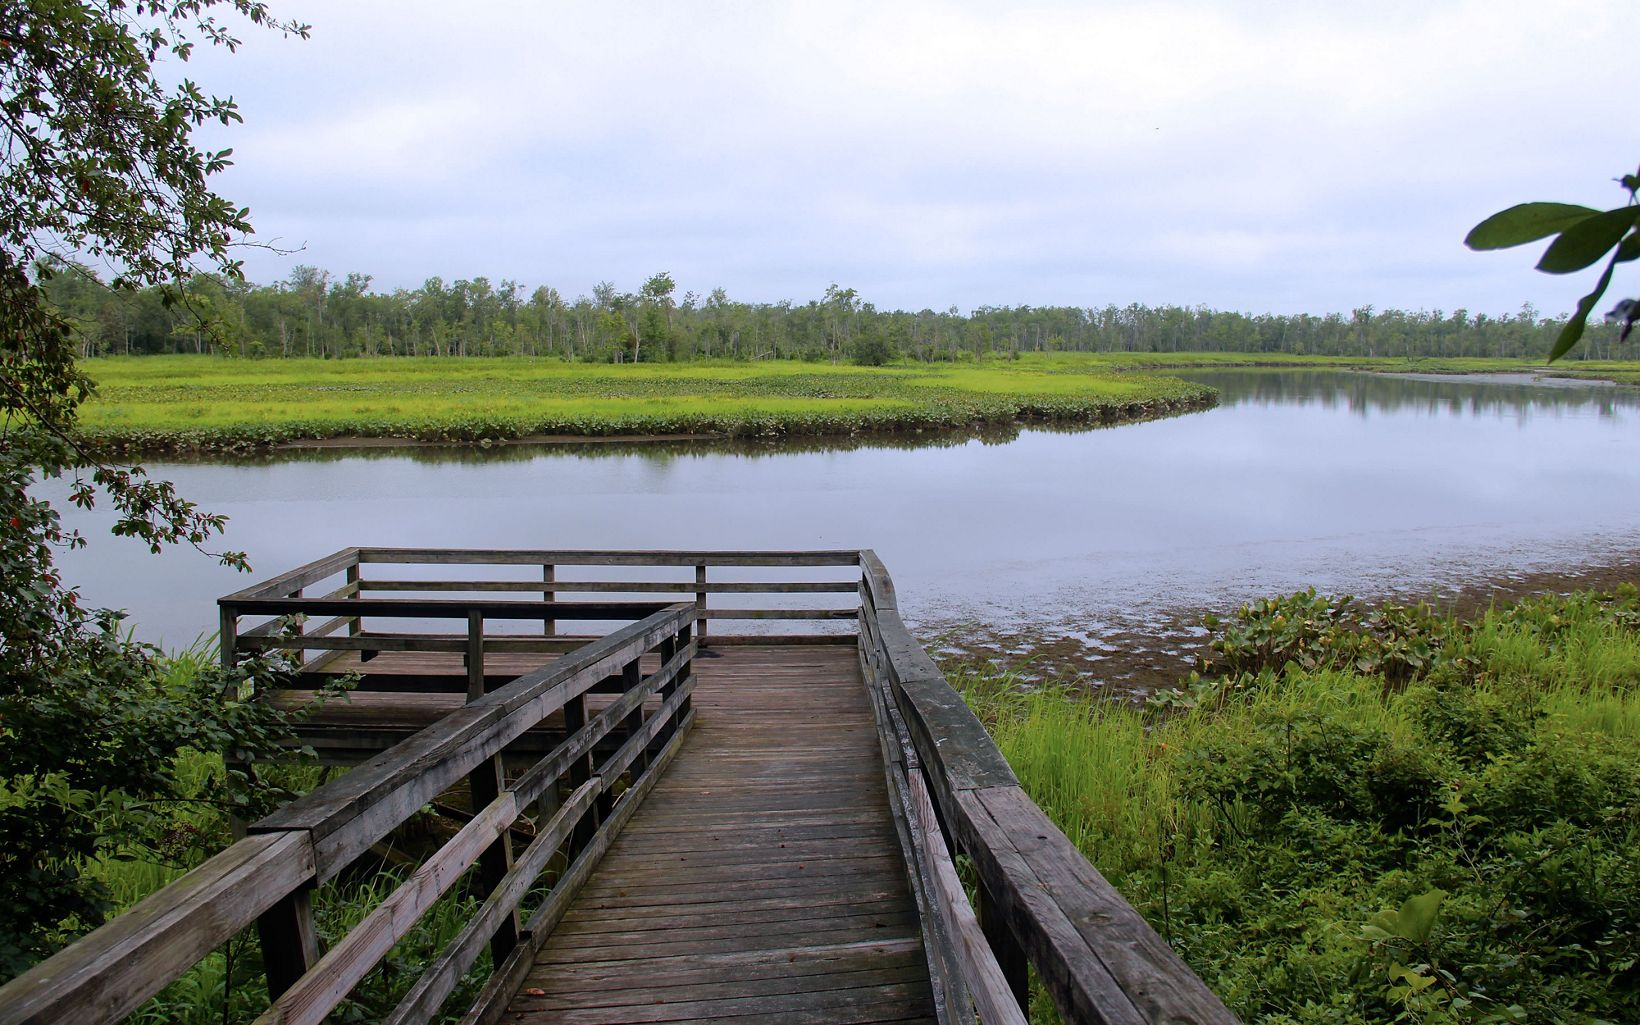 A wooden boardwalk ends at an observation deck offering unobstructed views of the marsh. Open water curves around thick wetland vegetation and a tall stand of trees.